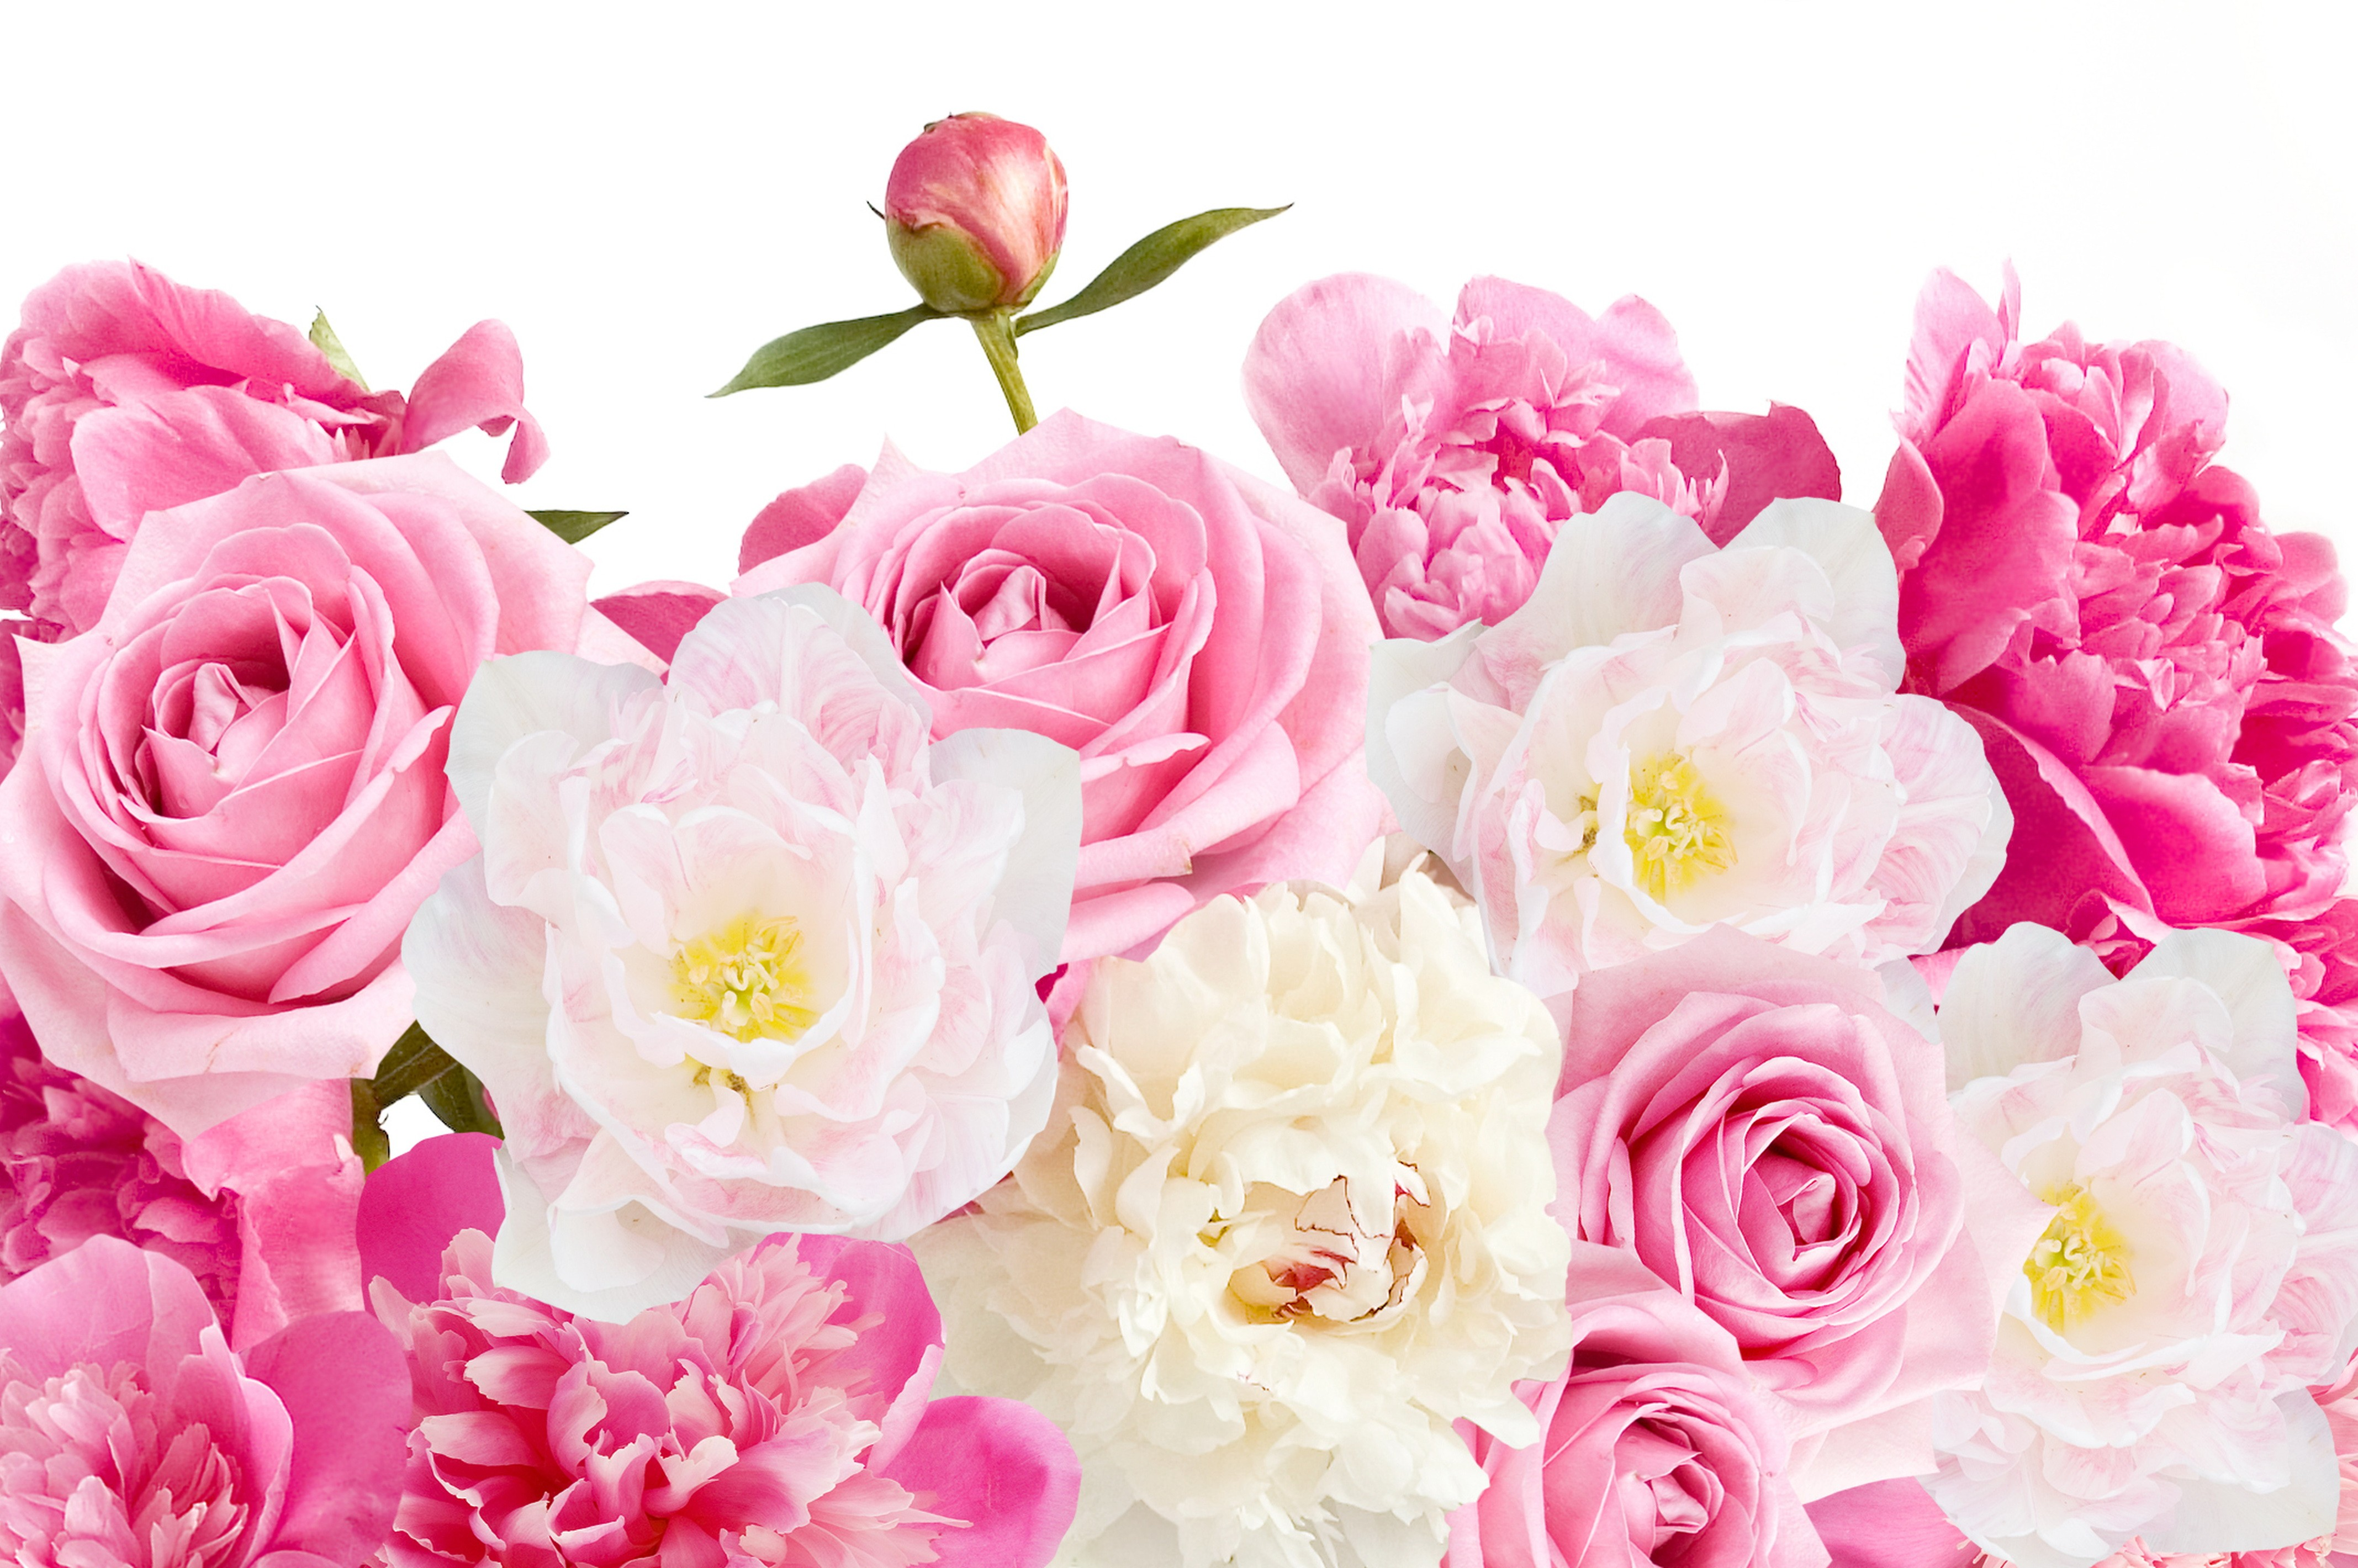 earth flower earth rose peony pink flower wallpaper